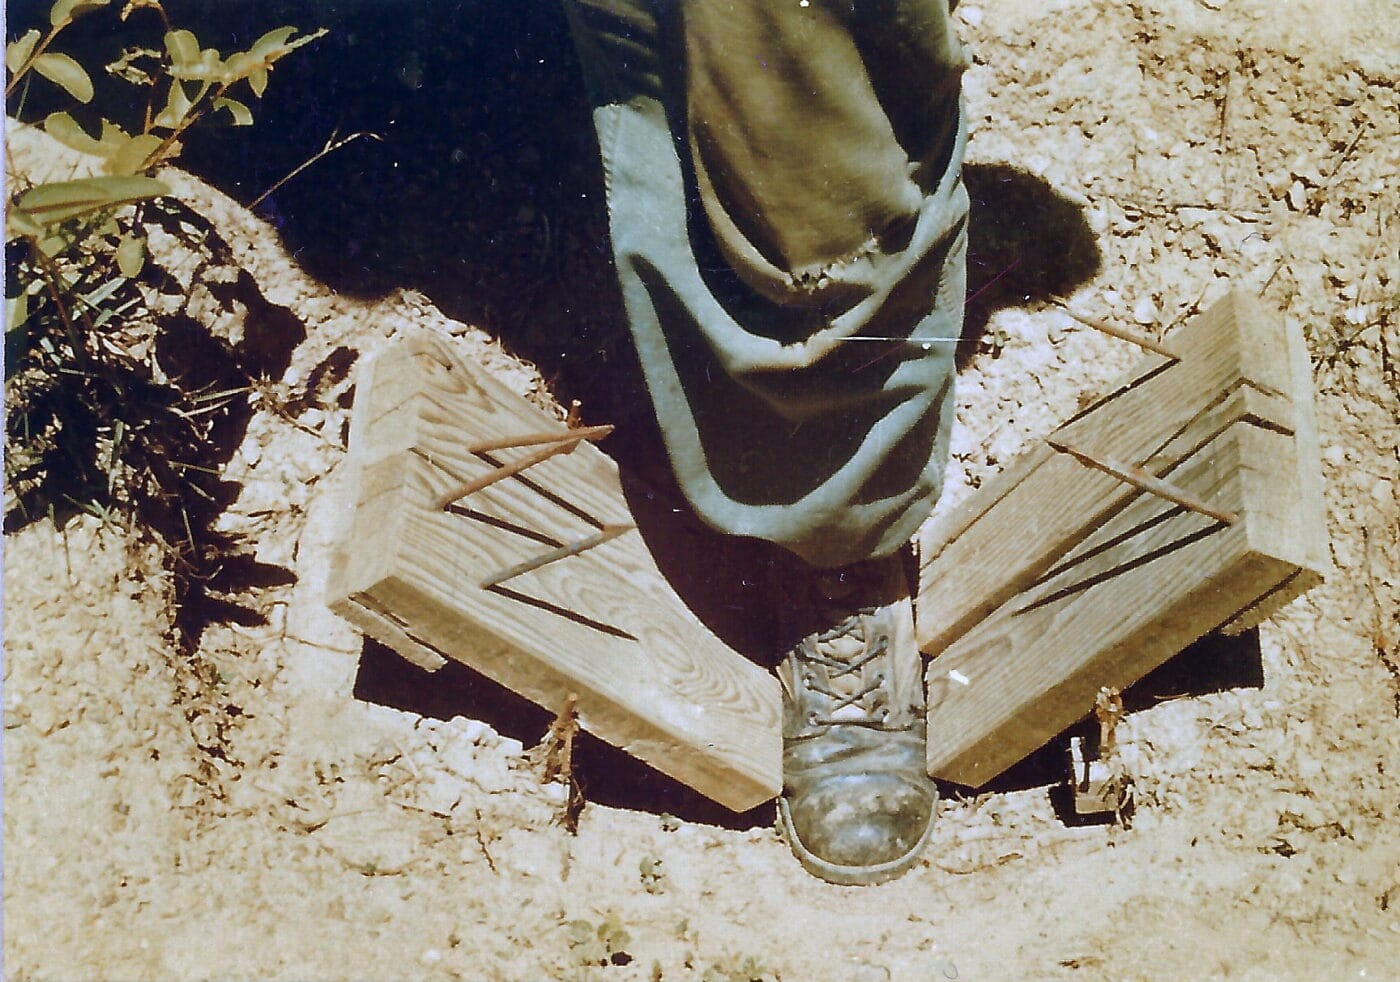 A Viet Cong foot trap demonstrated by a US Marine